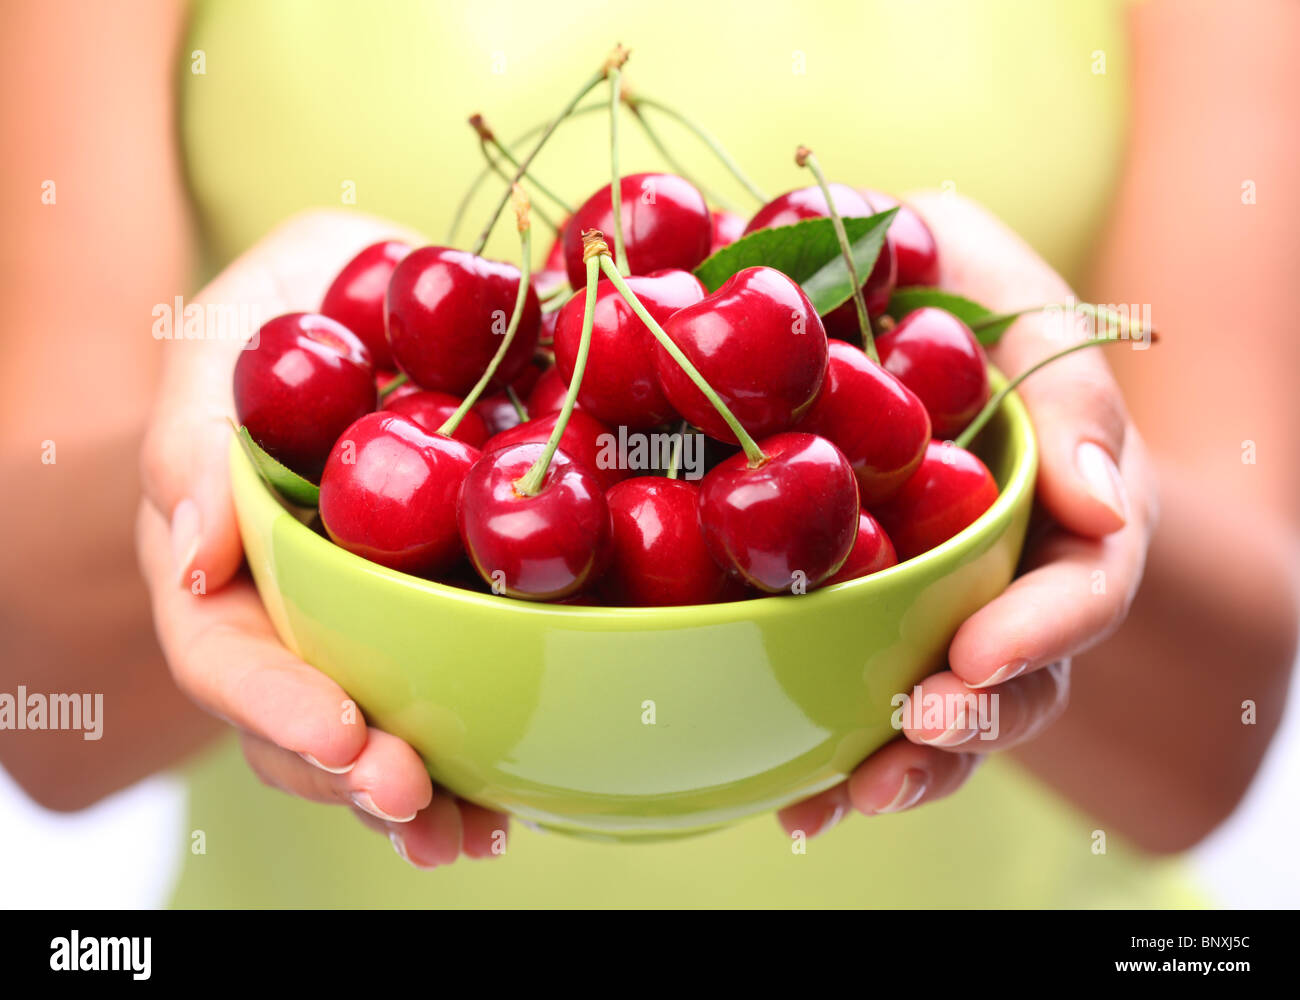 Crockery with cherries in woman hands. - Stock Image